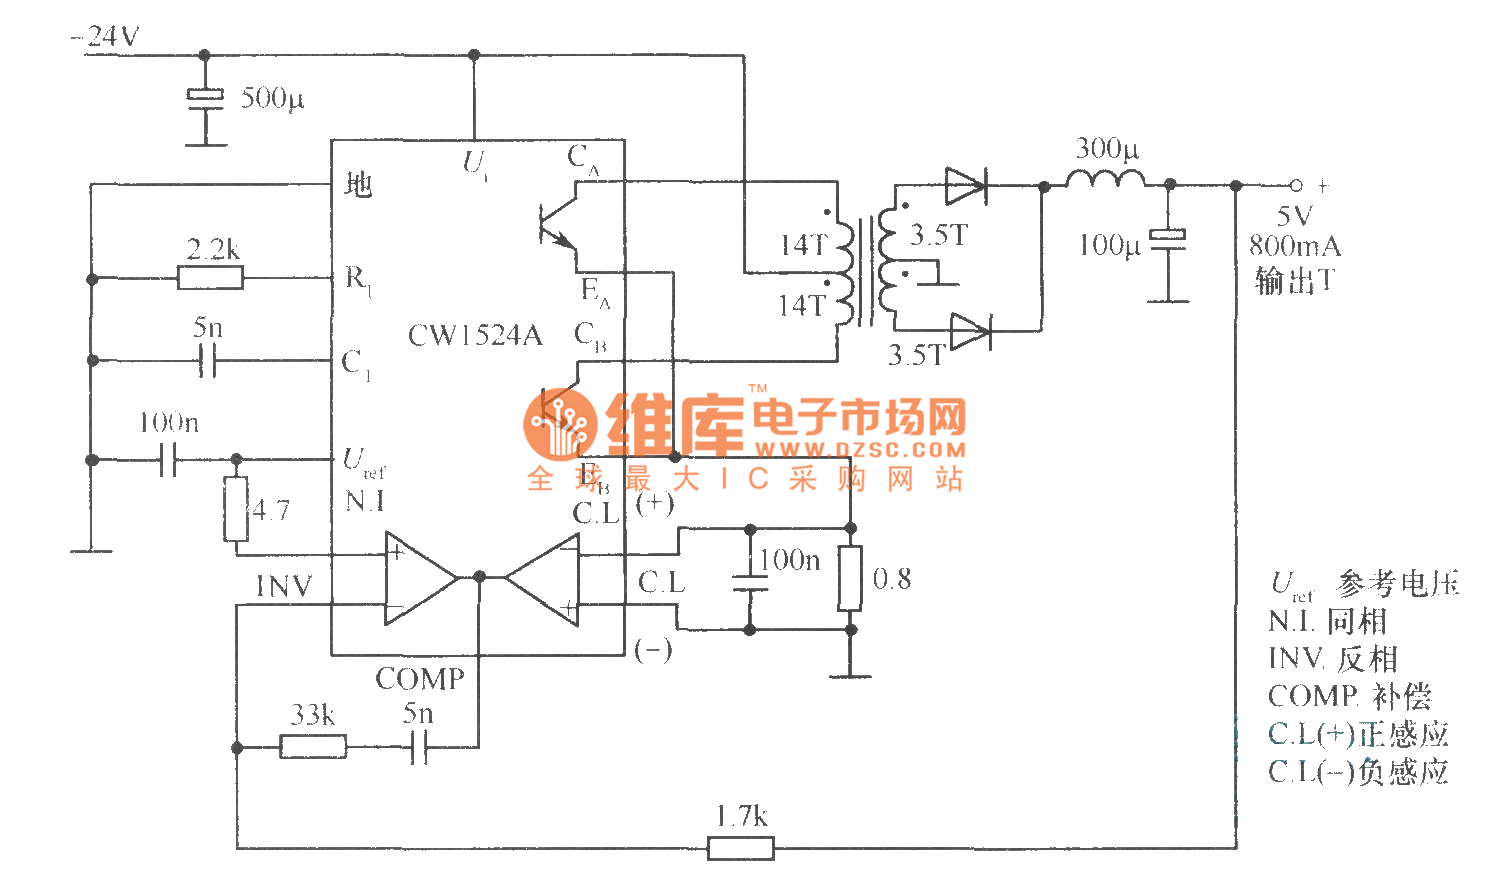 Astonishing Step Down Chopper Type Switching Power Supply Circuit Composed Of Wiring Digital Resources Spoatbouhousnl